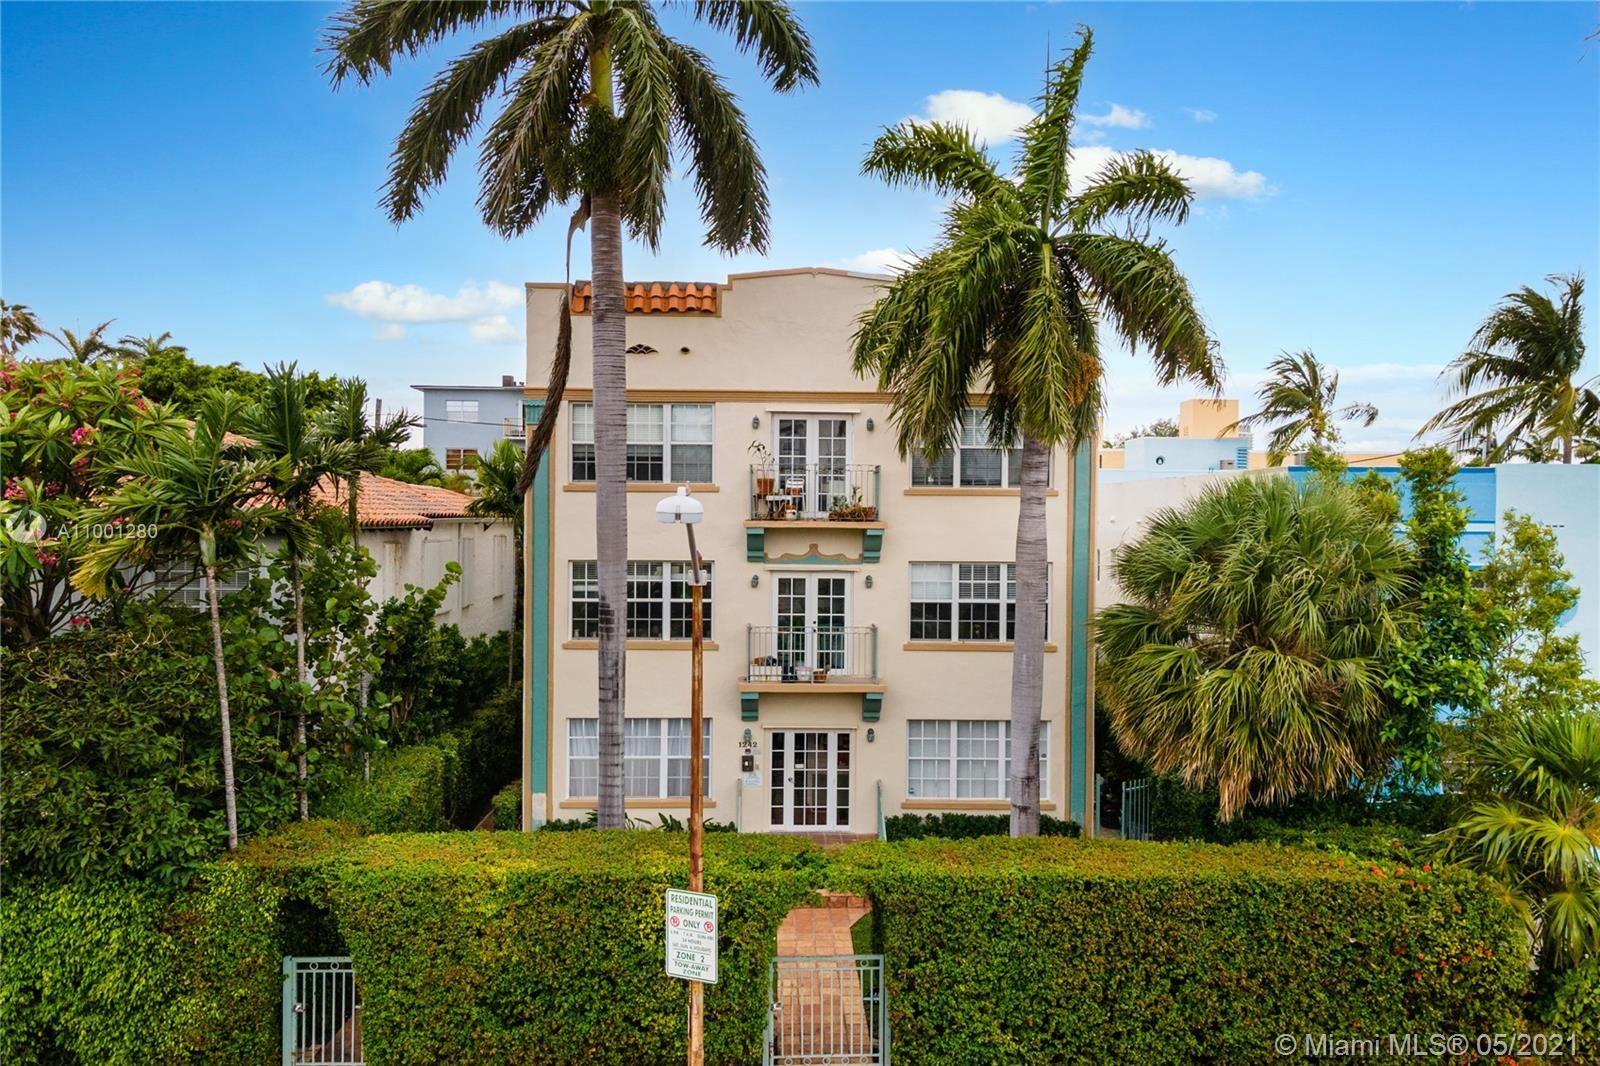 1242 Drexel Ave #106, Miami Beach, FL 33139 - #: A11001280